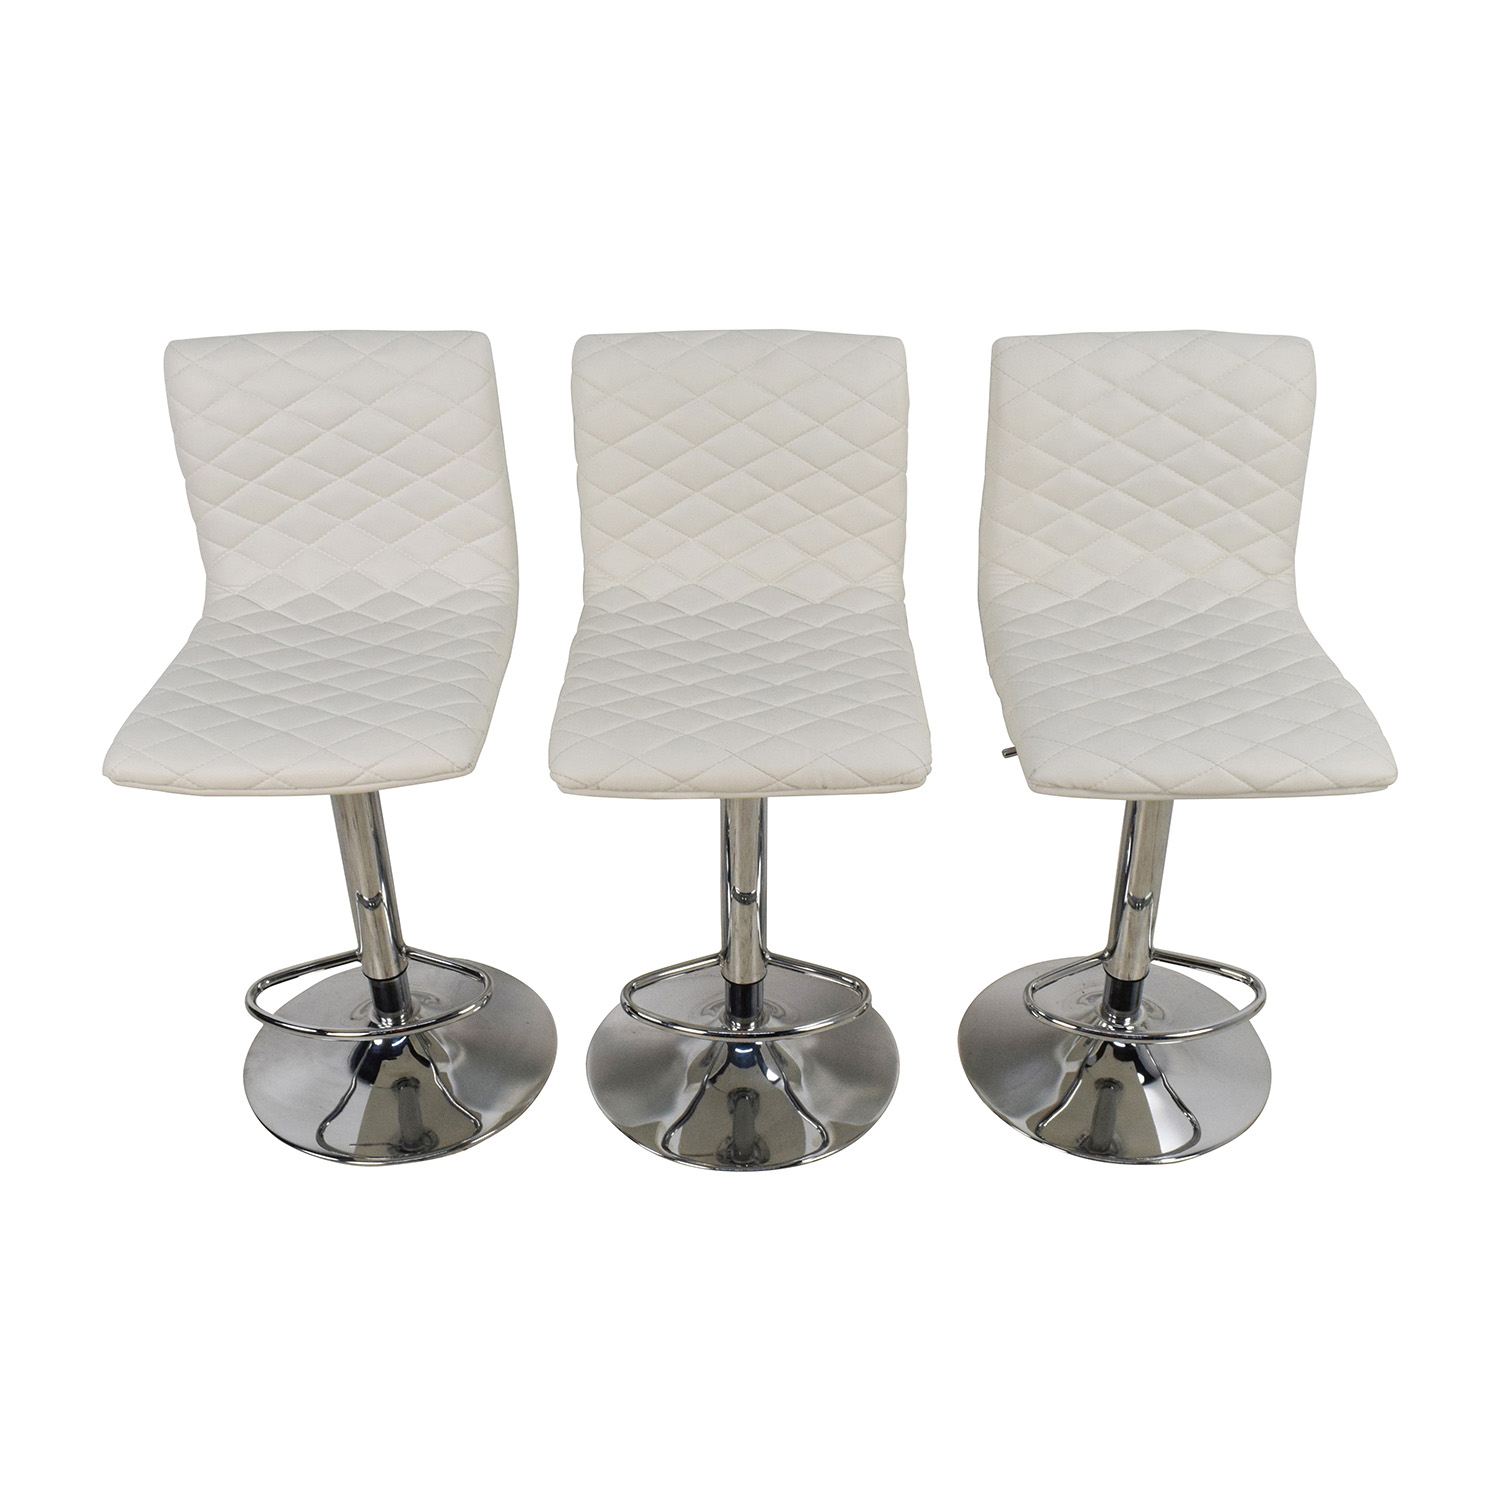 White Quilted Bar Stool Chairs used